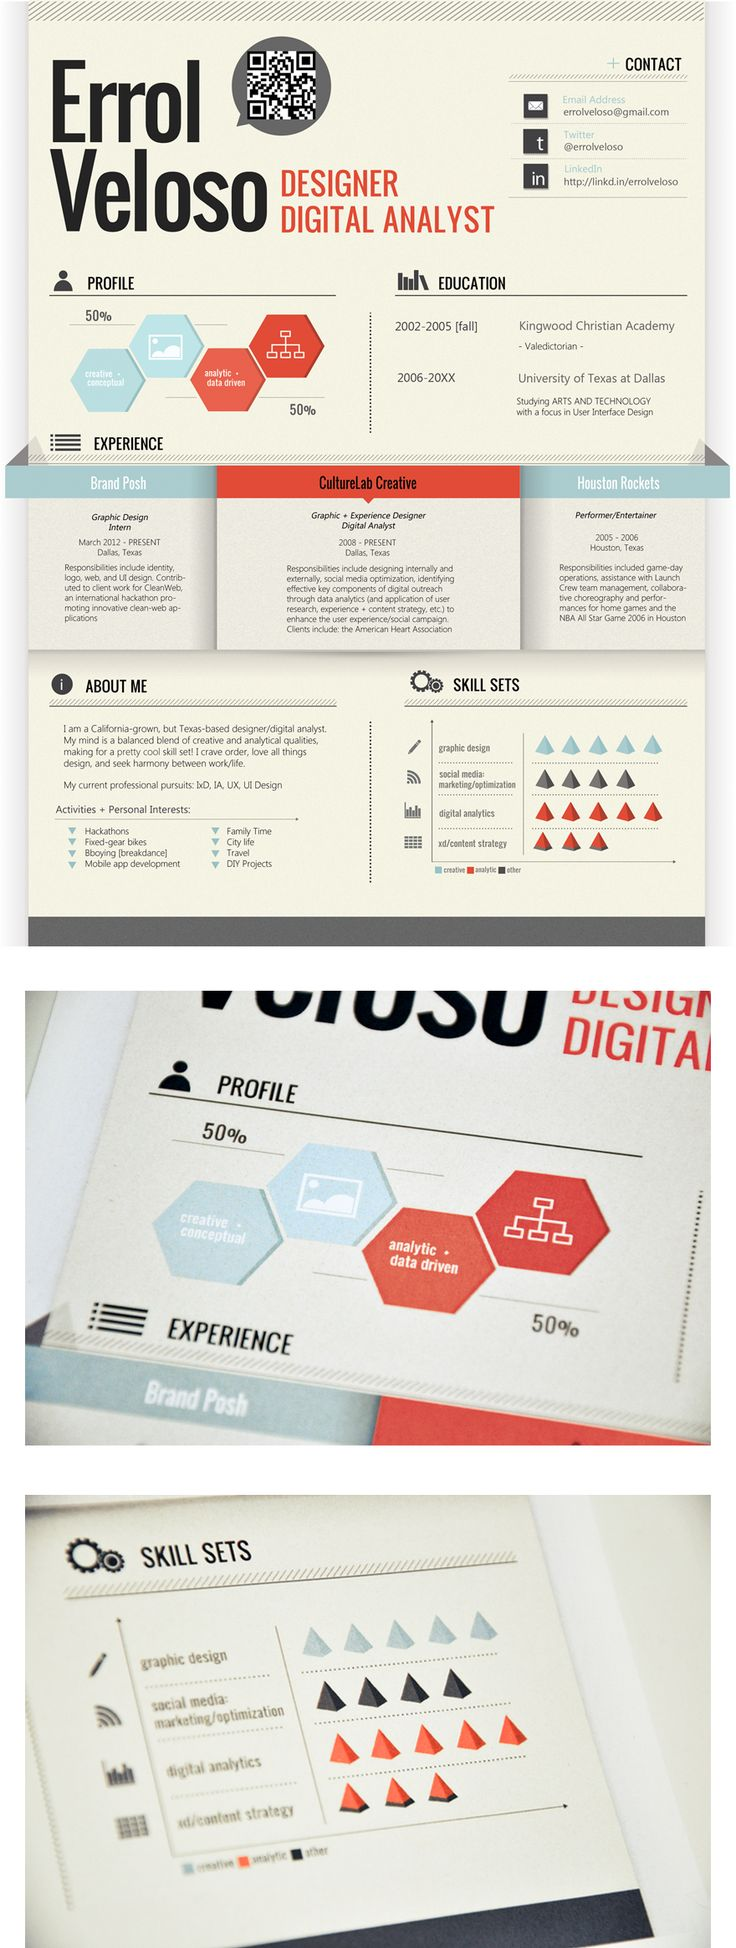 17 best images about infographic resume examples on pinterest